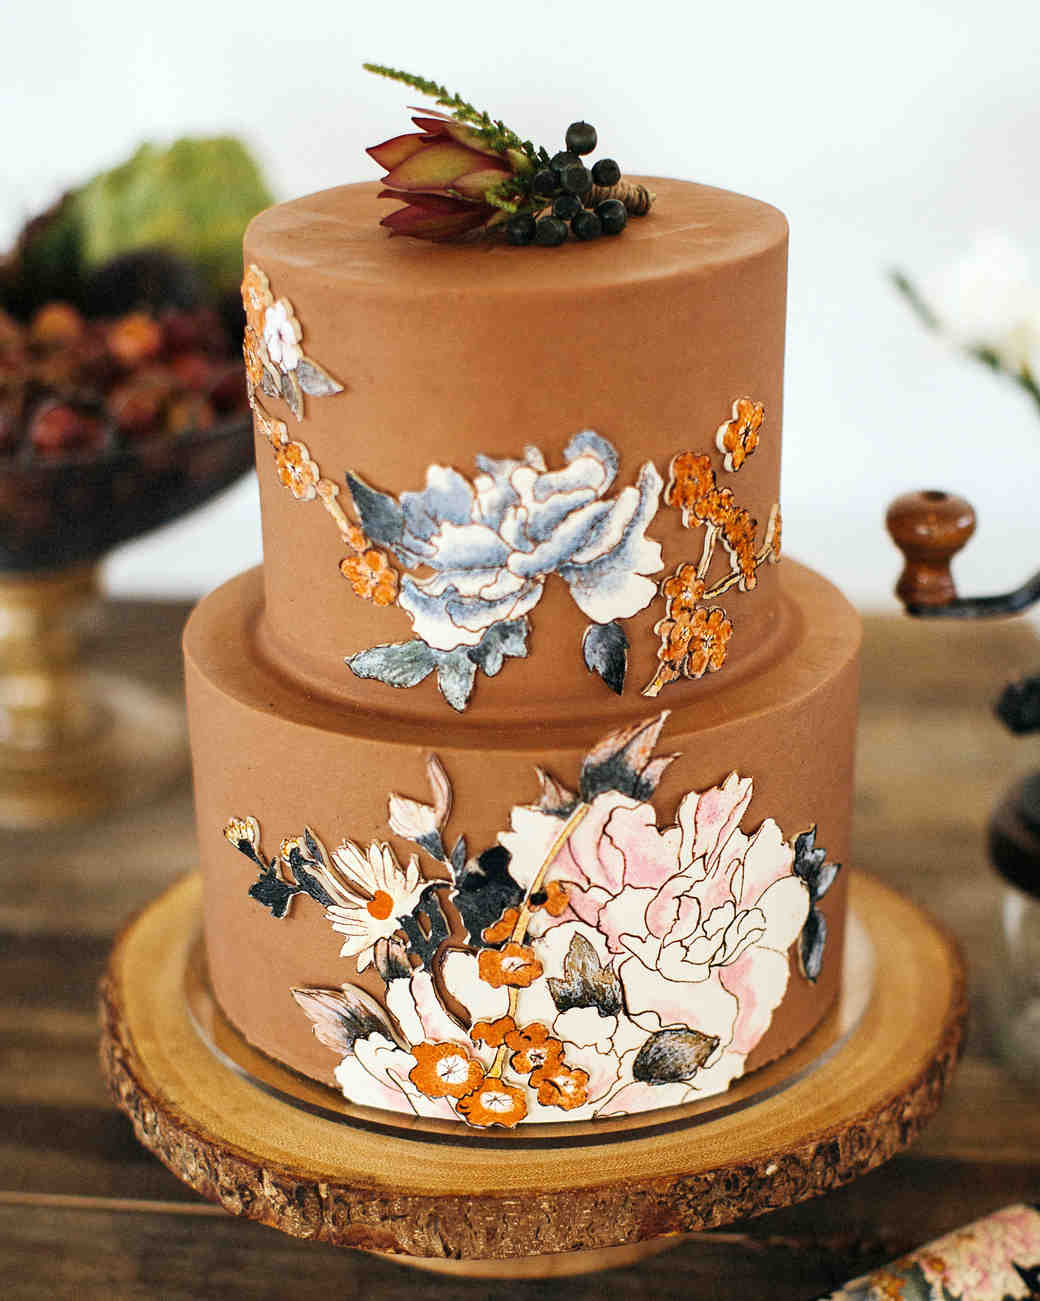 learn-the-lingo-frosting-ganache-intricate-icings-cake-design-0814.jpg